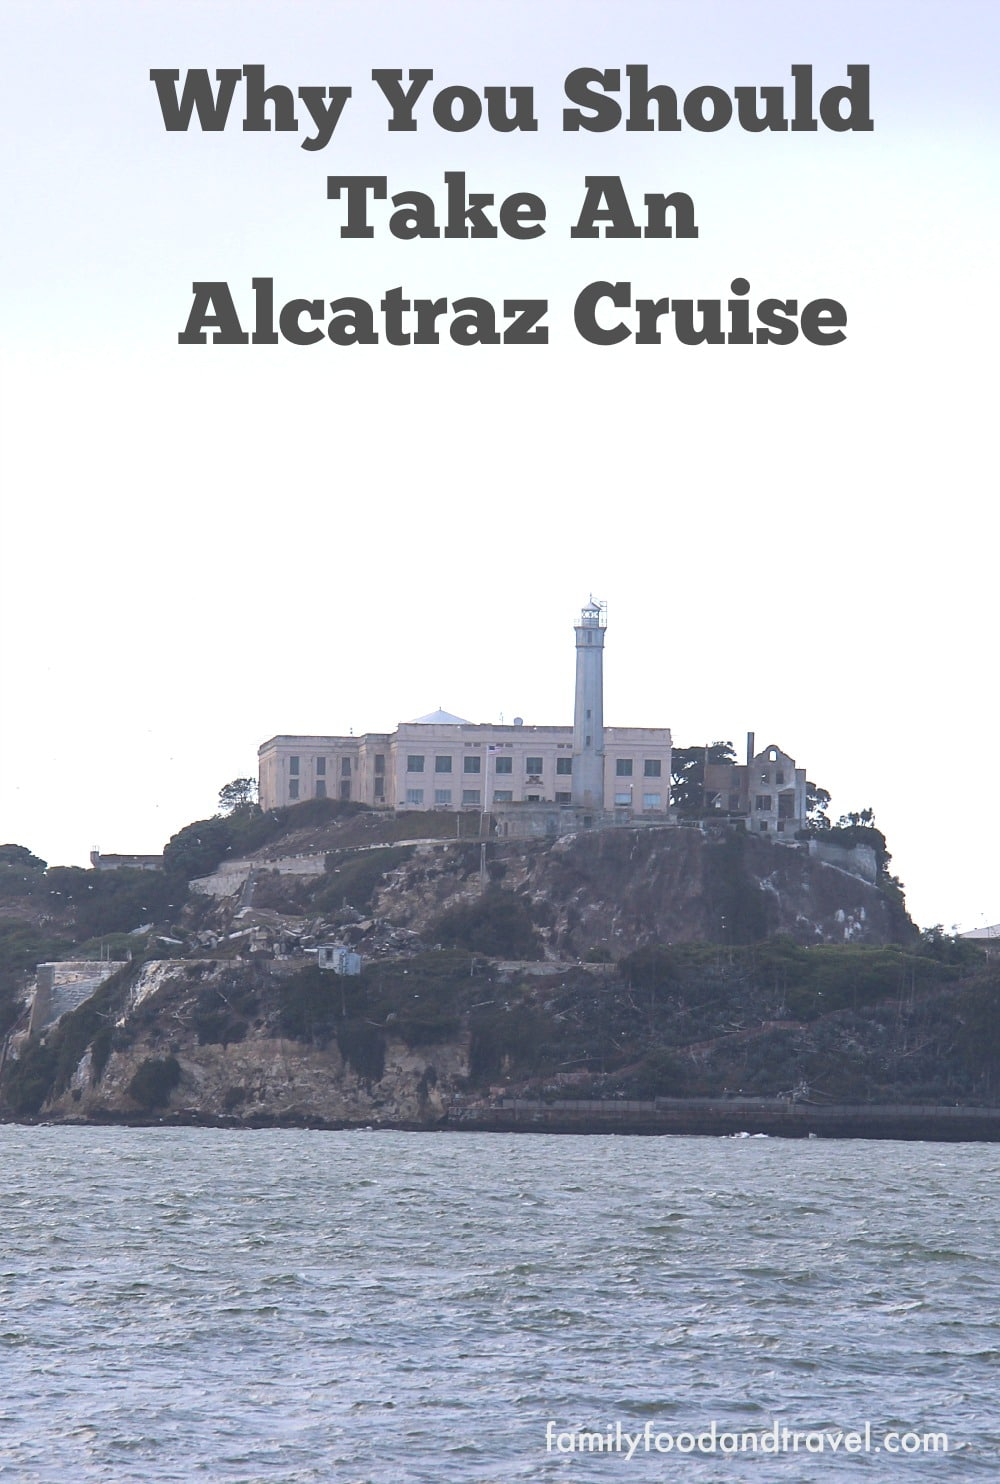 Why You Should Take an Alcatraz Cruise